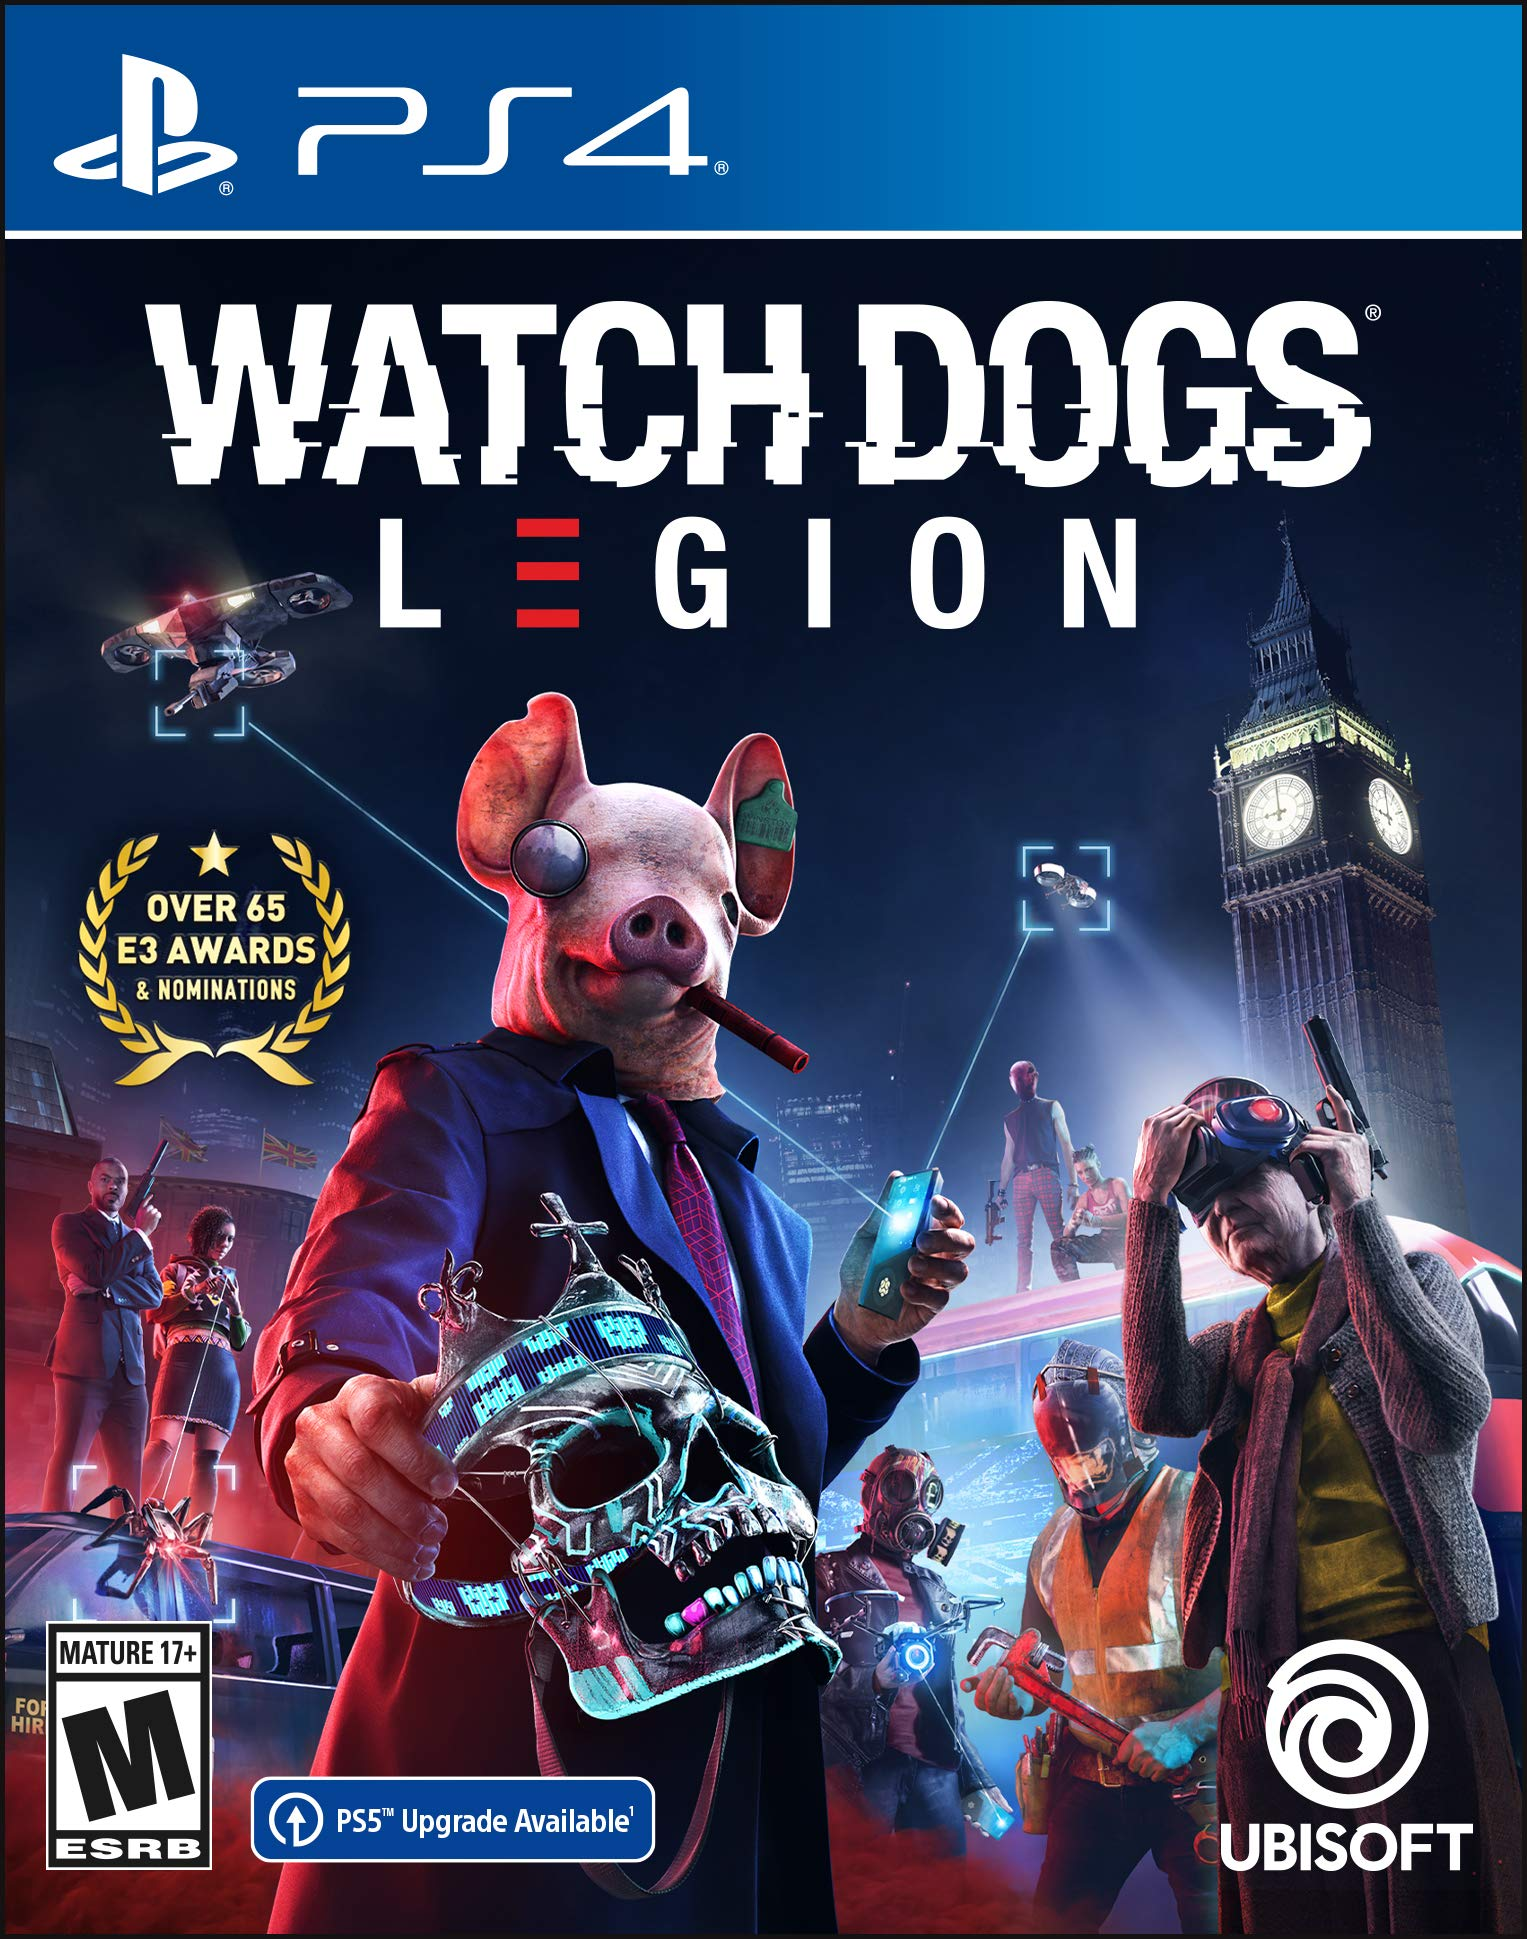 Watch Dogs Legion - PS4 Standard Edition - $19.99 @ Amazon + FS with Prime